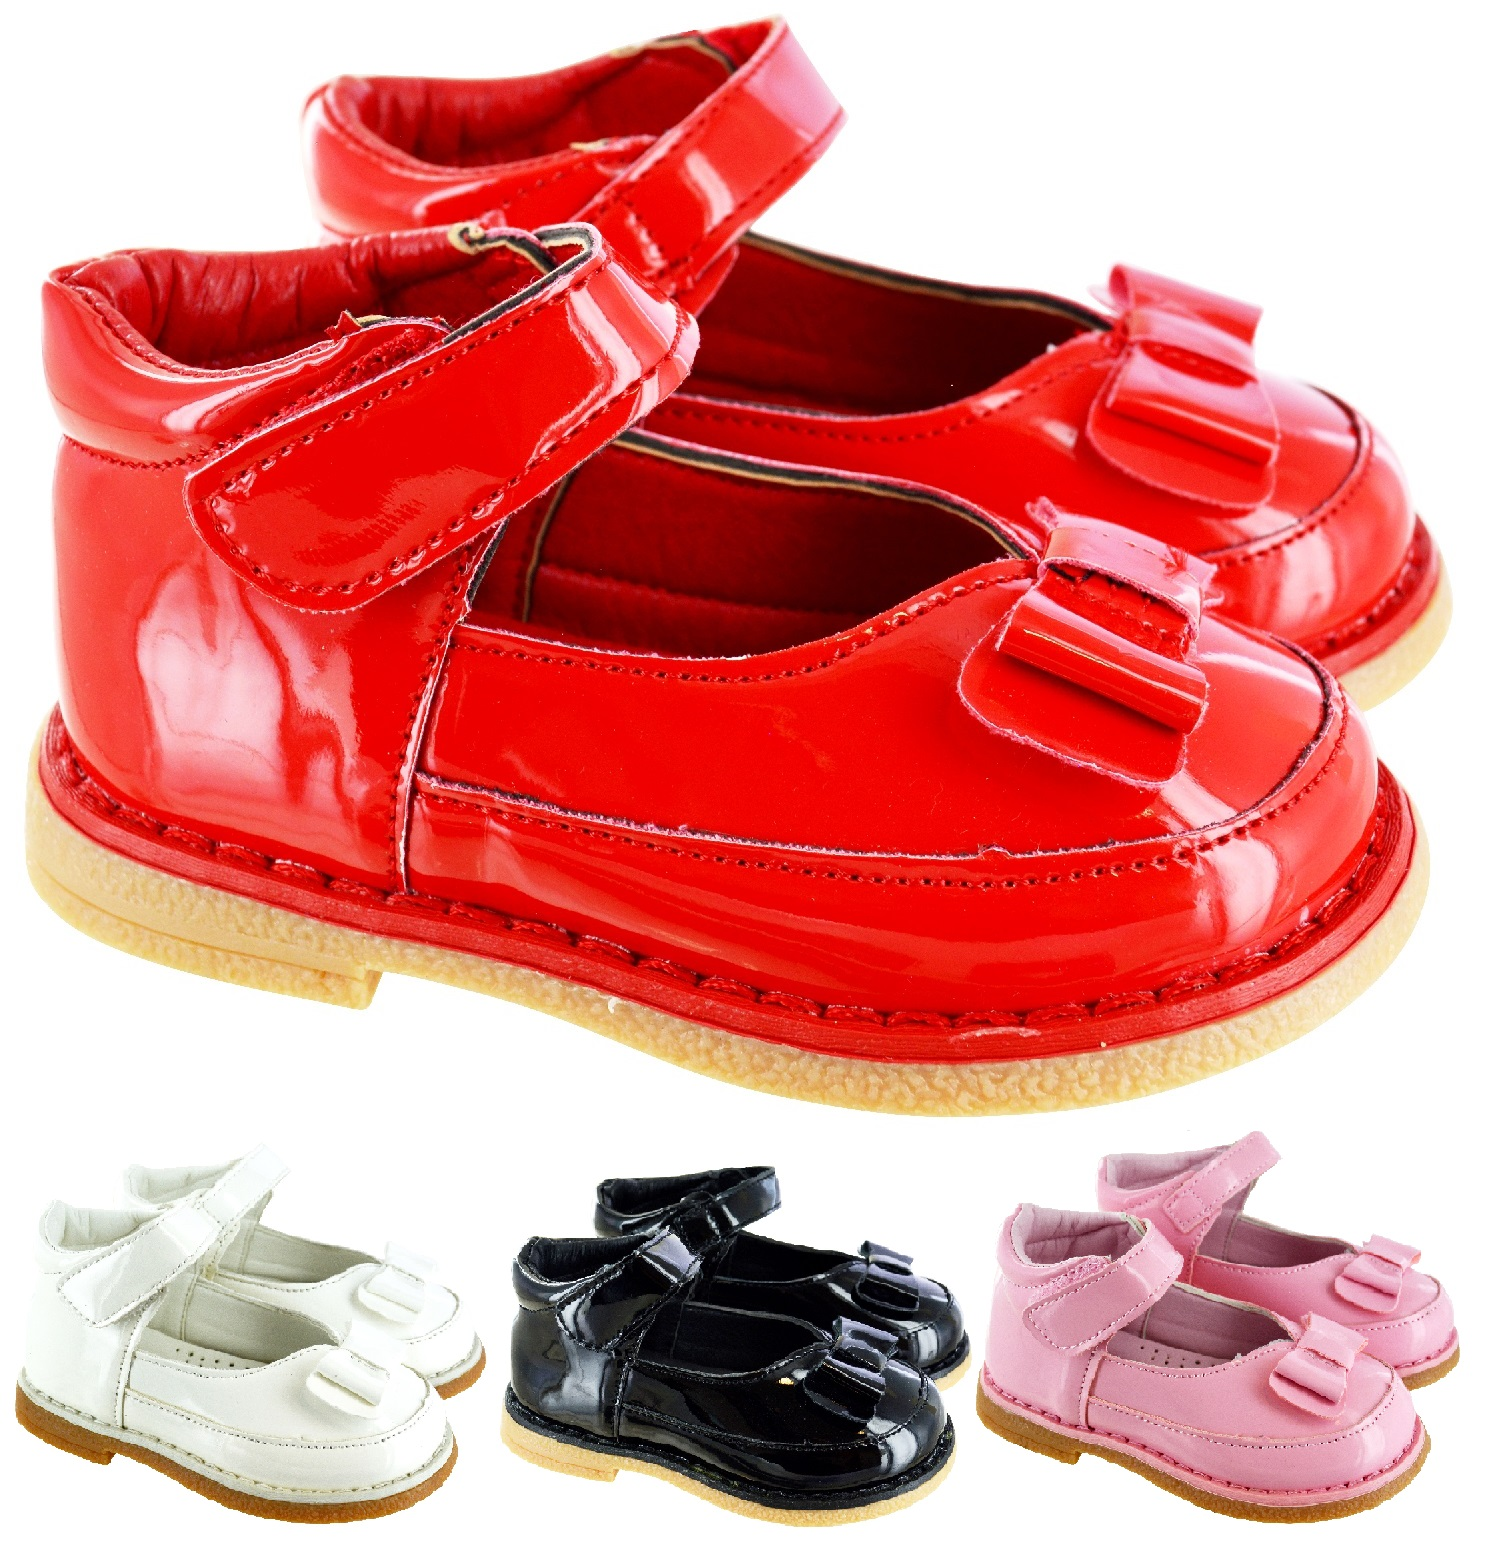 KIDS GIRLS BABY INFANTS FLOWER BOW PATENT SPANISH T BAR WEDDING PARTY SHOES SIZE